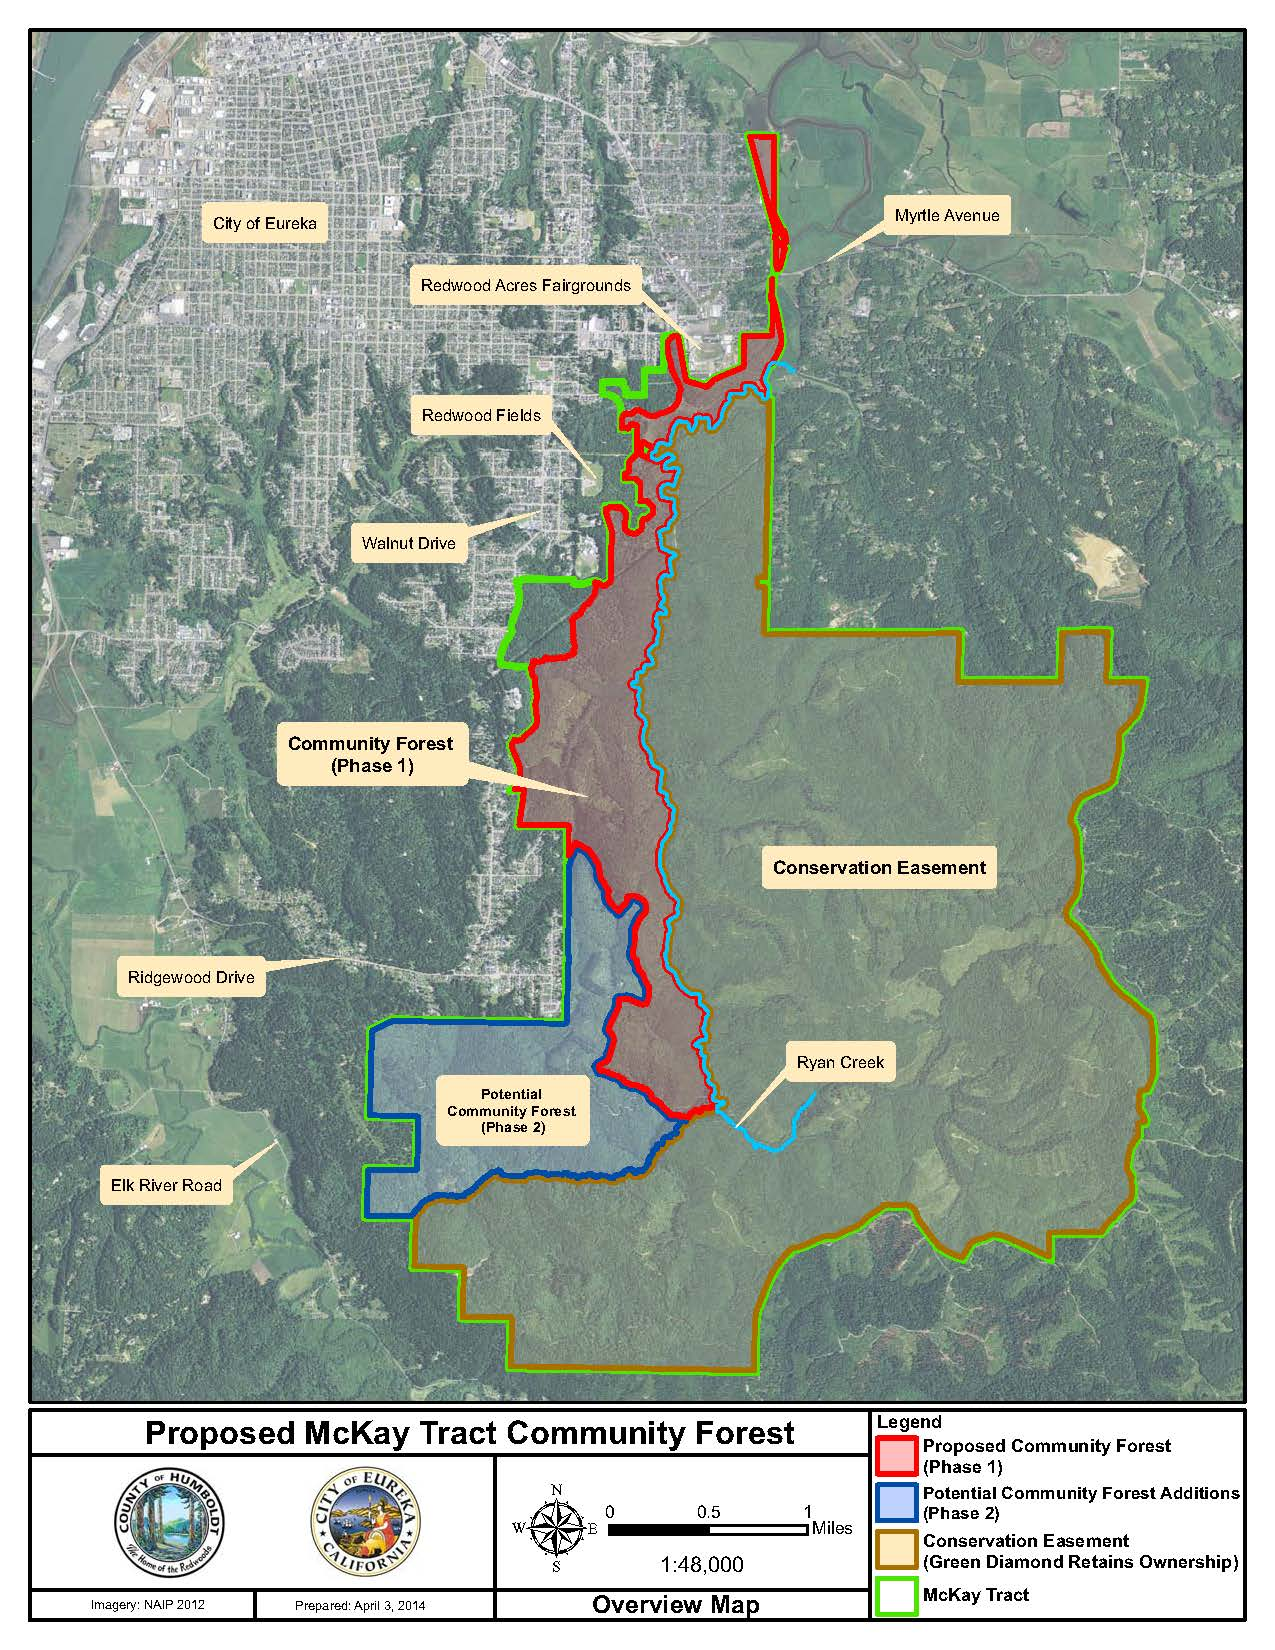 mckay forest project report maps 4-7-2014_CoverImage